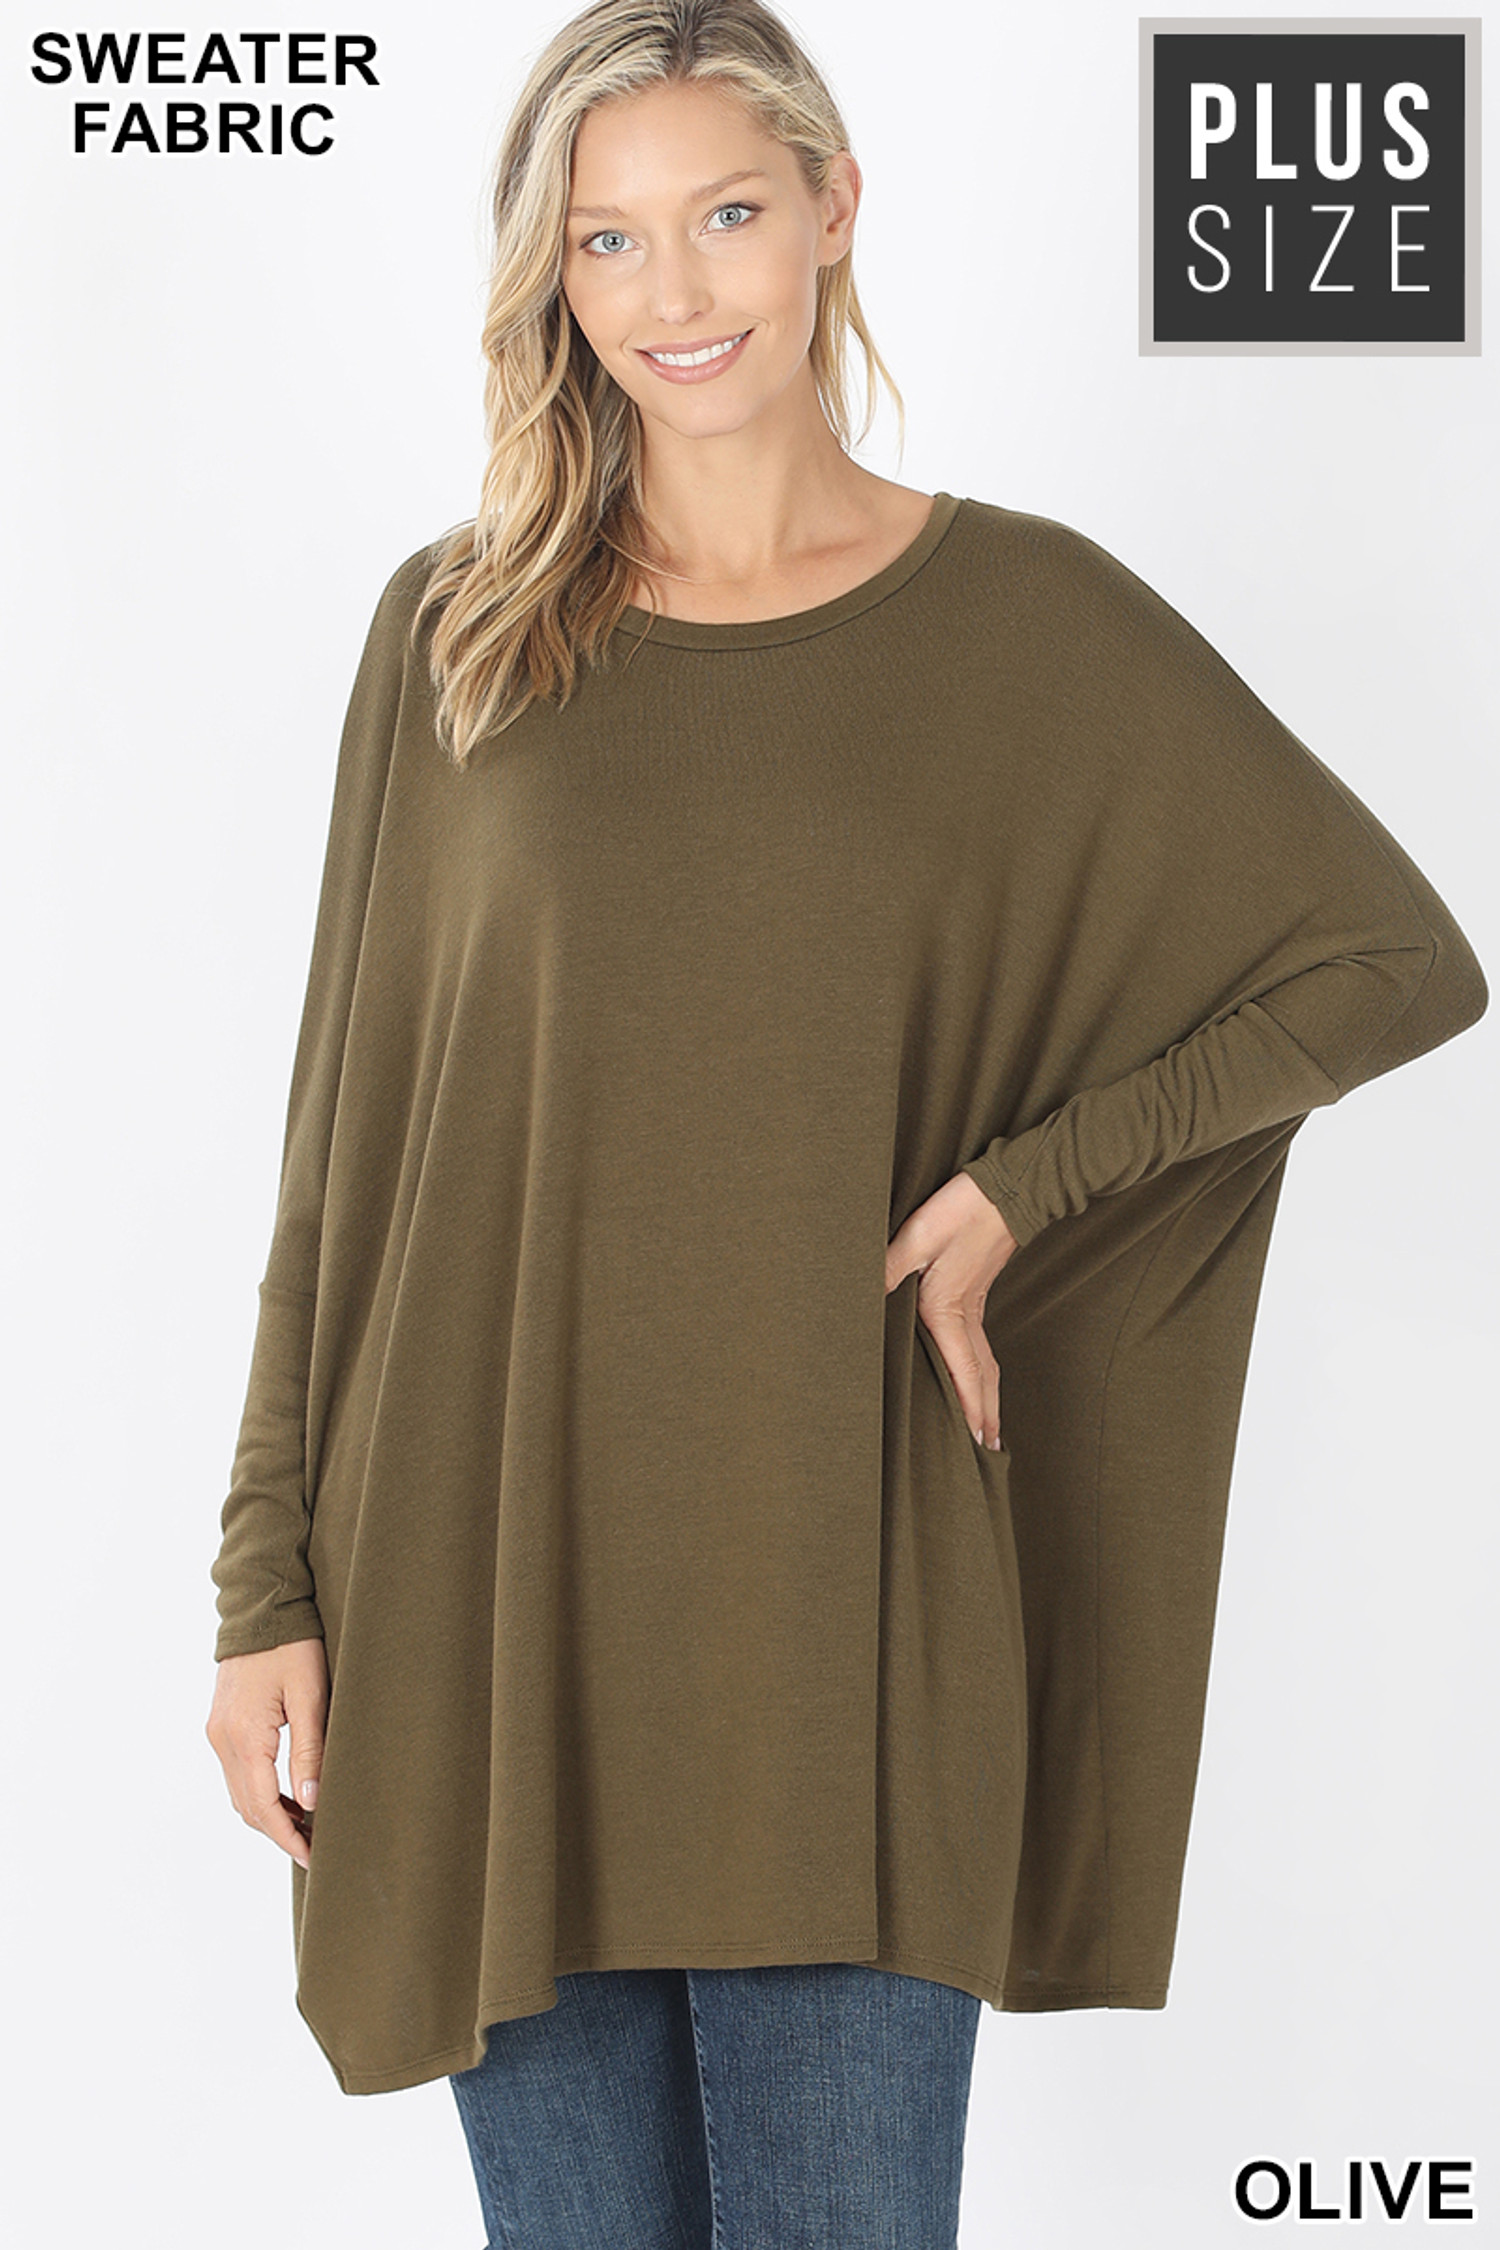 Front view of Olive Oversized Round Neck Poncho Plus Size Sweater